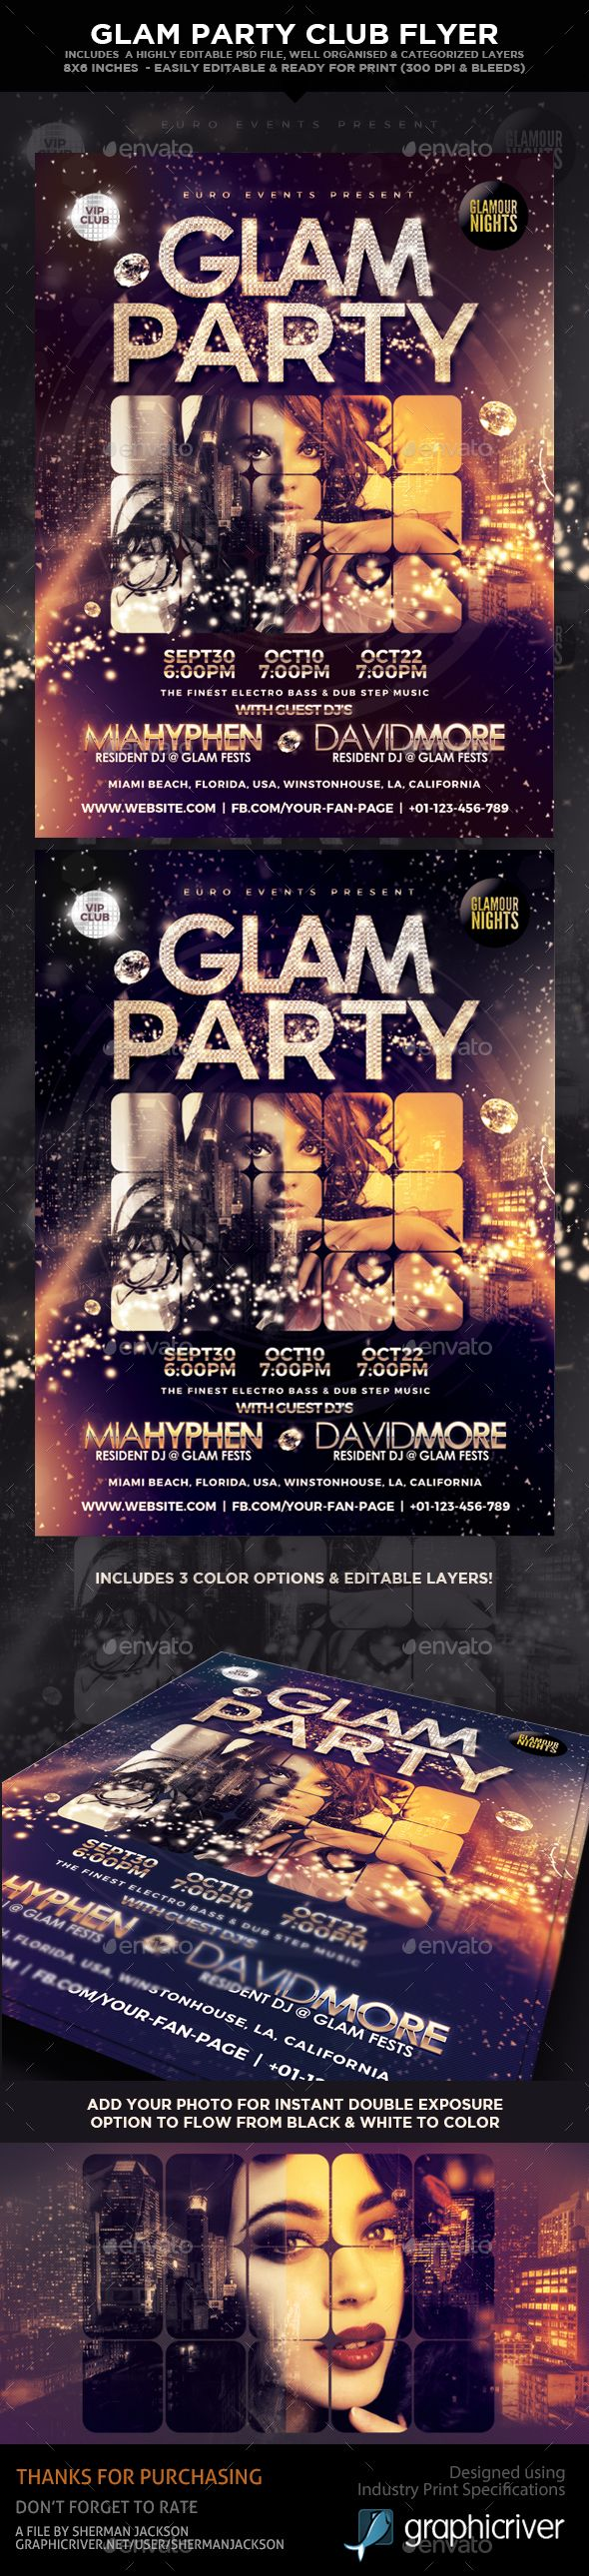 Glam Party Club Flyer  — PSD Template #rich #Fashion flyers • Download ➝ https://graphicriver.net/item/glam-party-club-flyer/18031788?ref=pxcr